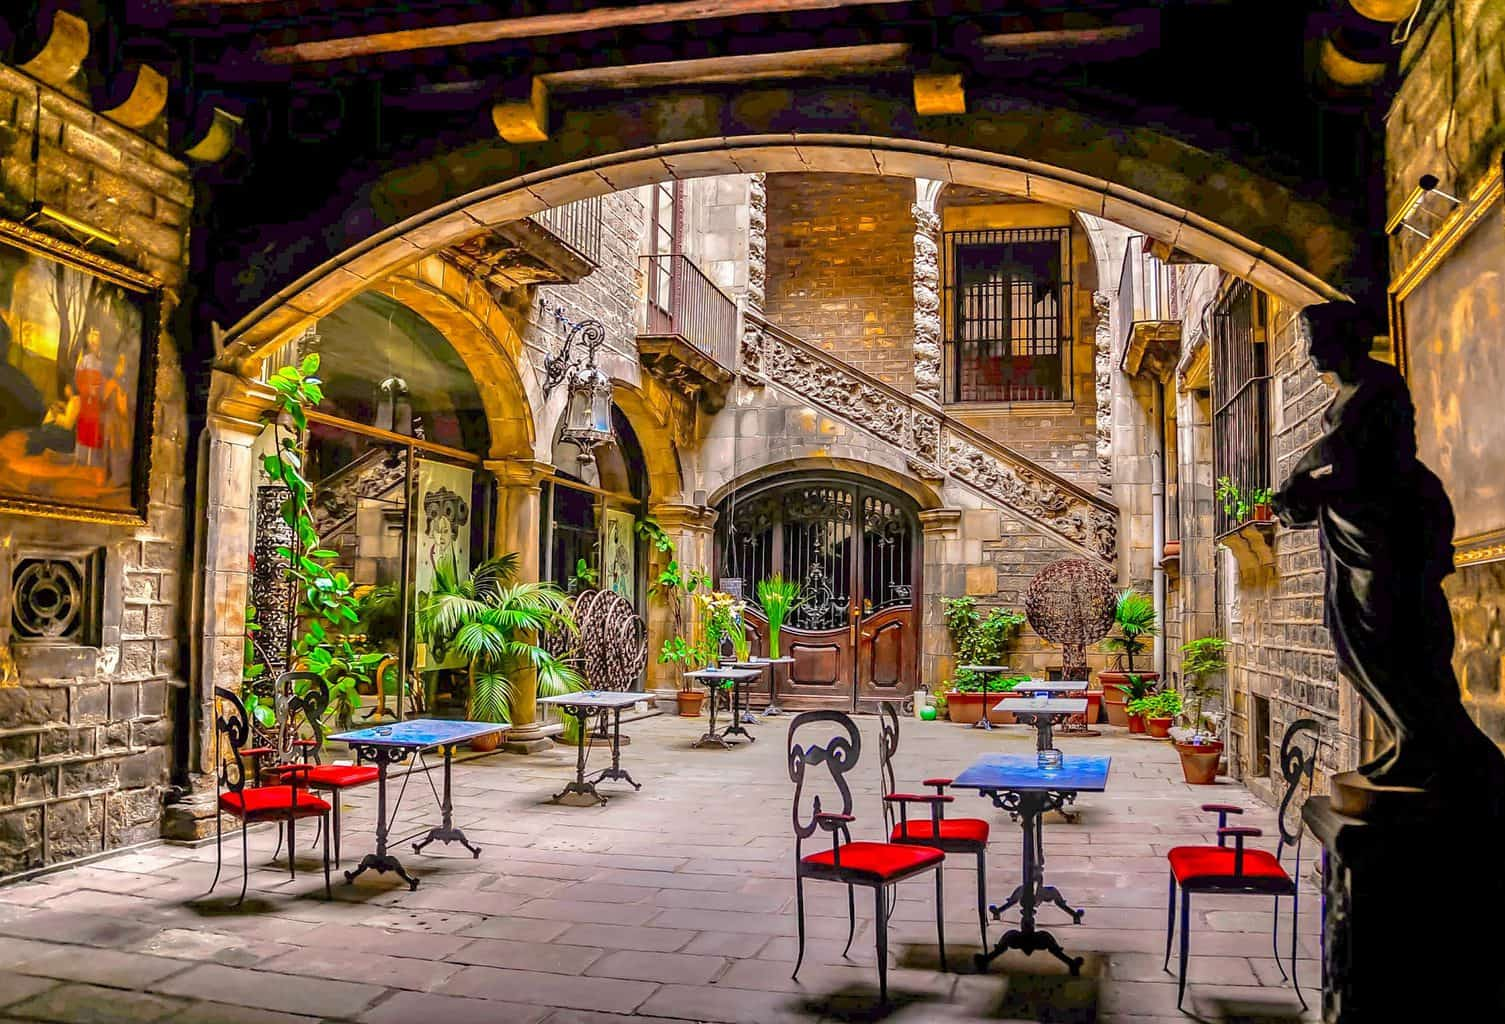 The charming, Baroque courtyard of Barcelona's Palau Dalmases (image sourced from Flickr.com)